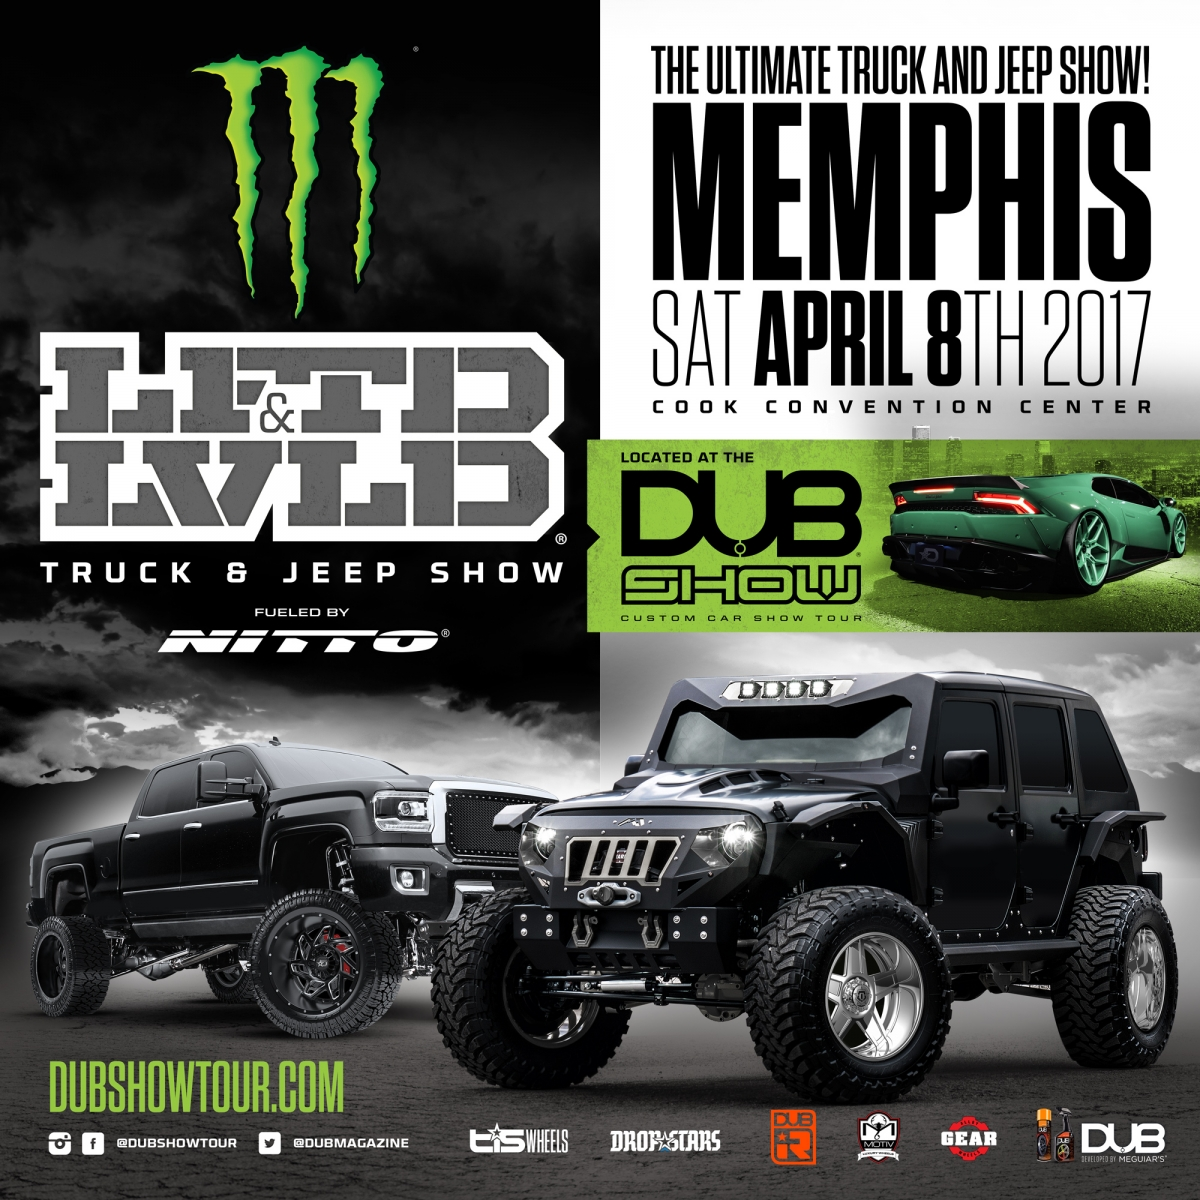 LFTDxLVLD Truck & Jeep Show inside The Monster Energy DUB Show | MEMPHIS - APRIL 8